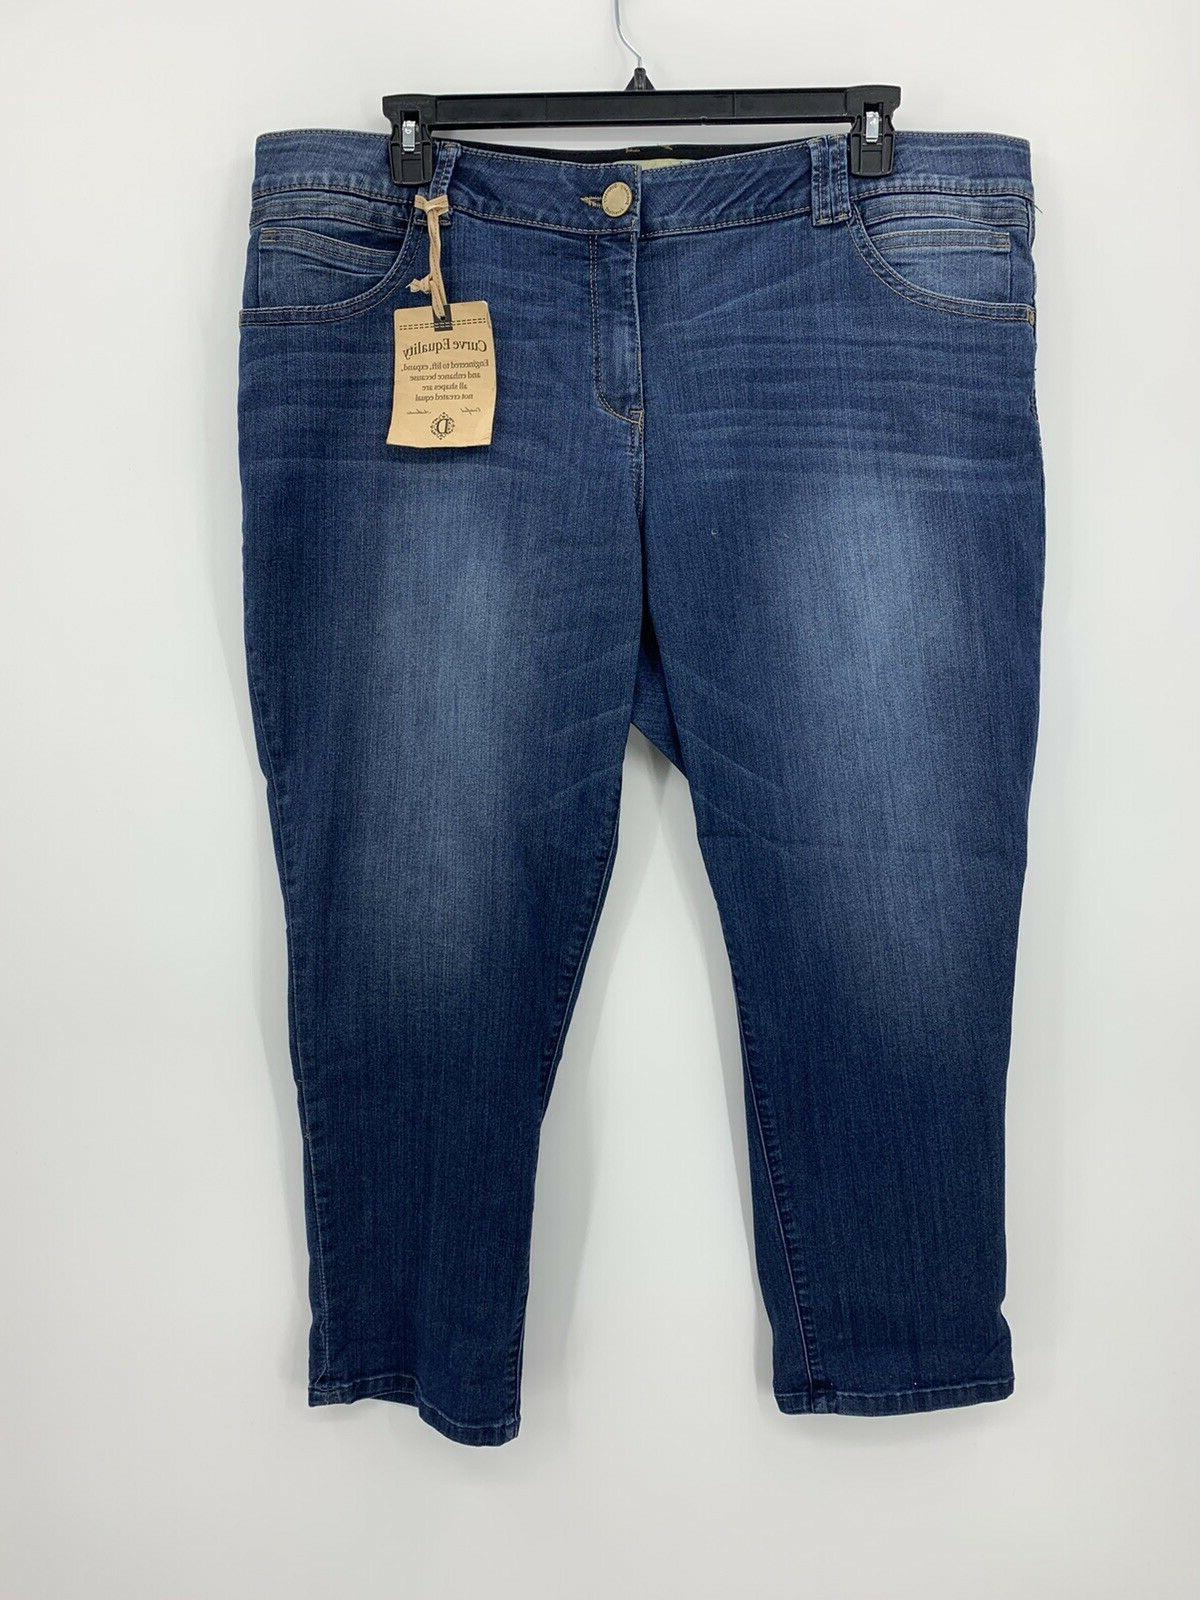 ab technology freedom ankle skimmer jeans womens